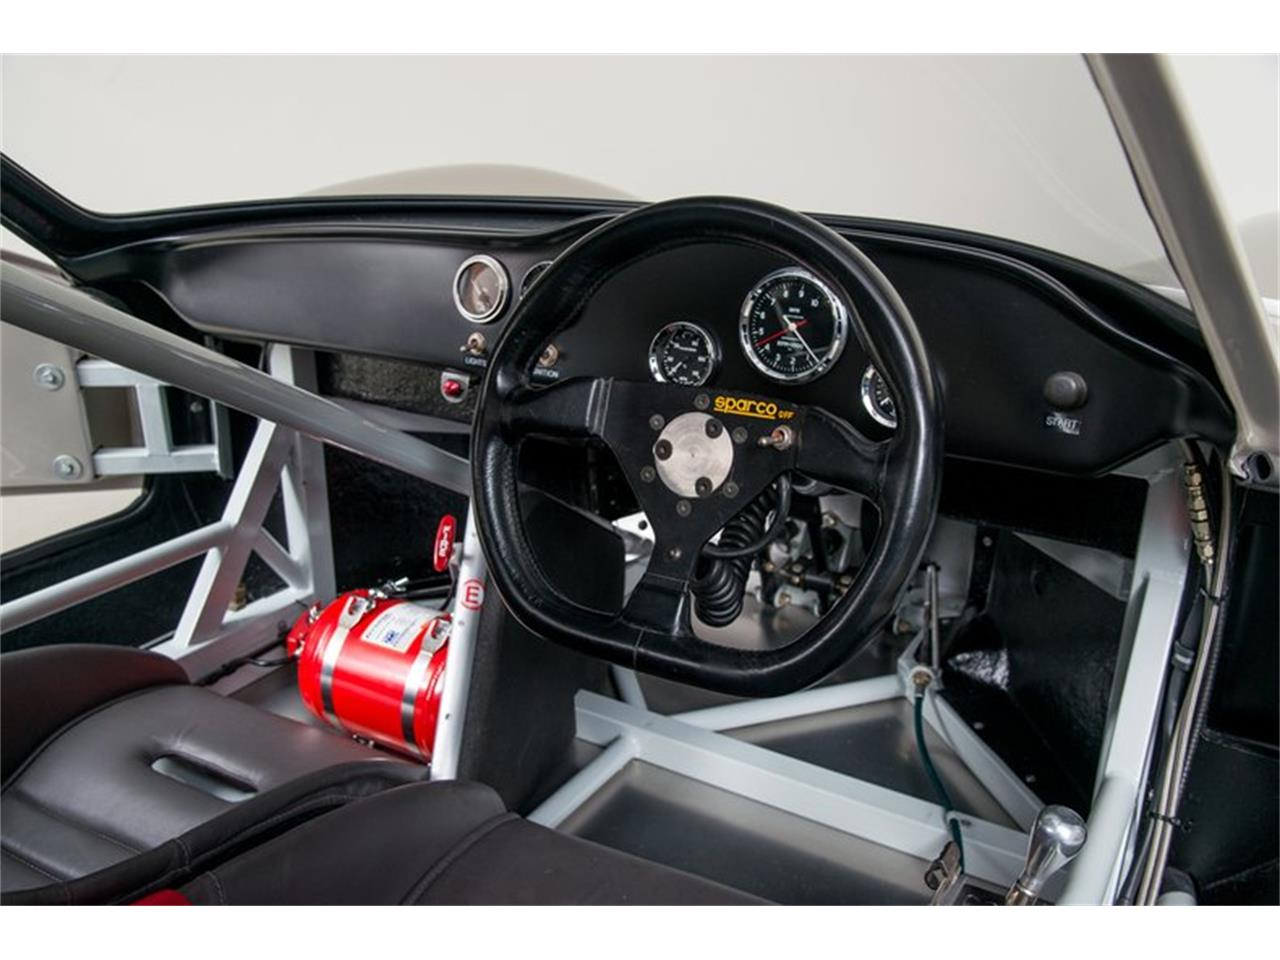 1967 Ginetta G12 for sale in Scotts Valley, CA – photo 10